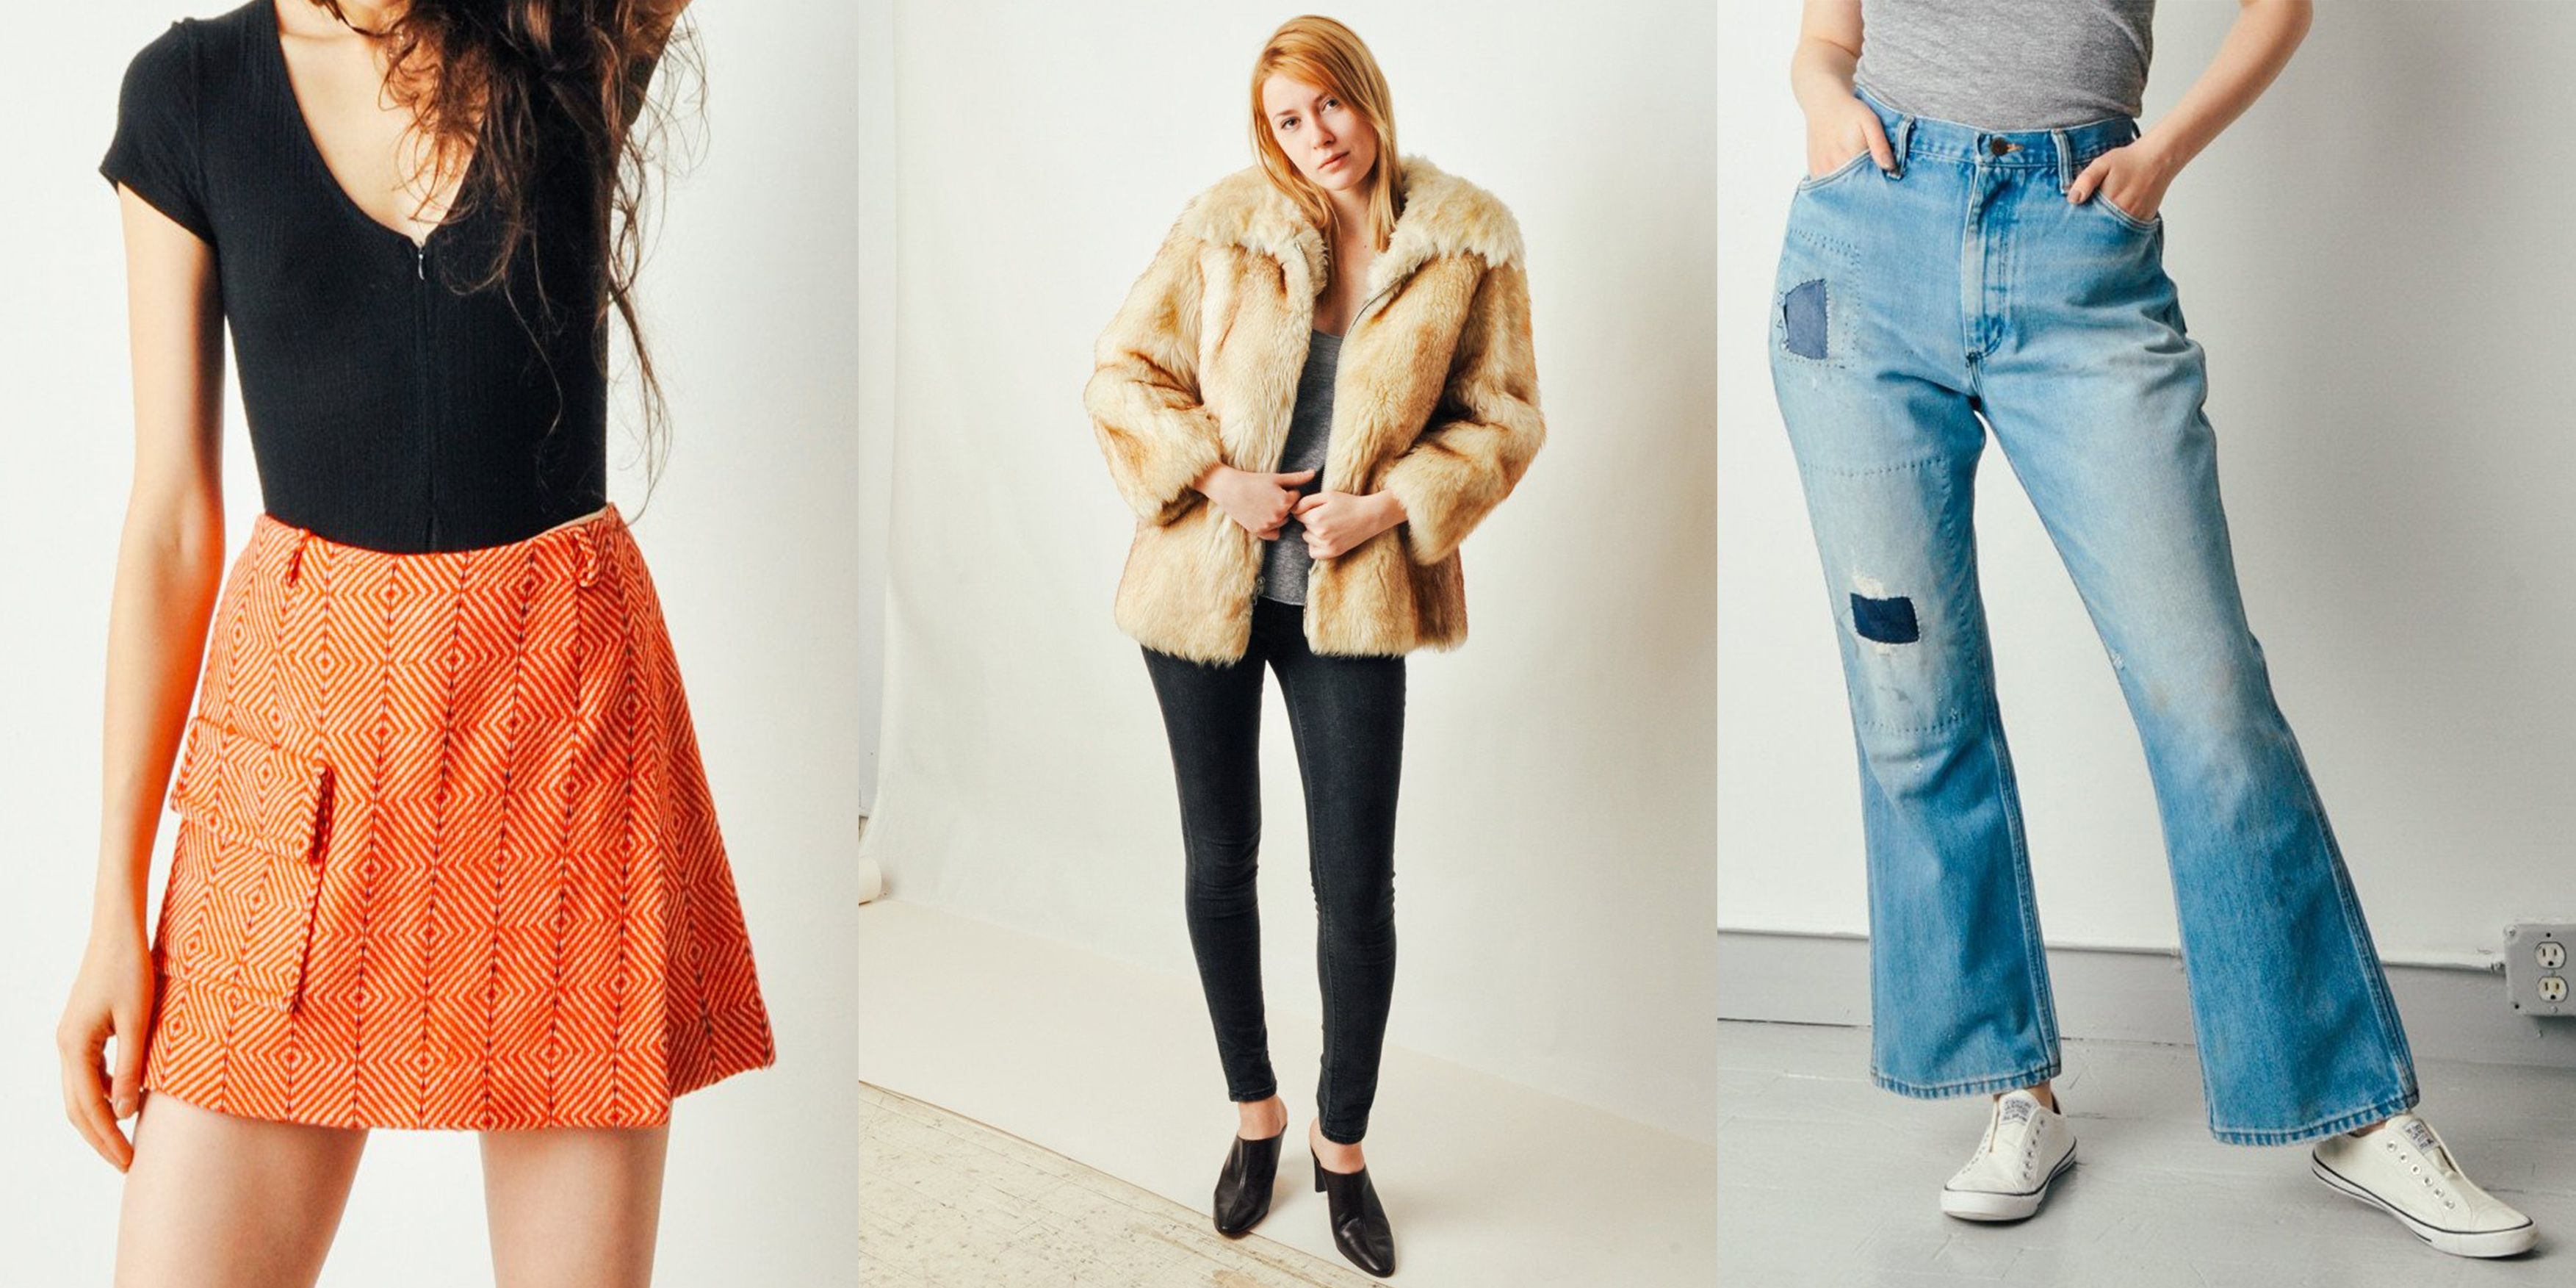 8 Best Online Thrift Stores For Second Hand Clothing Top